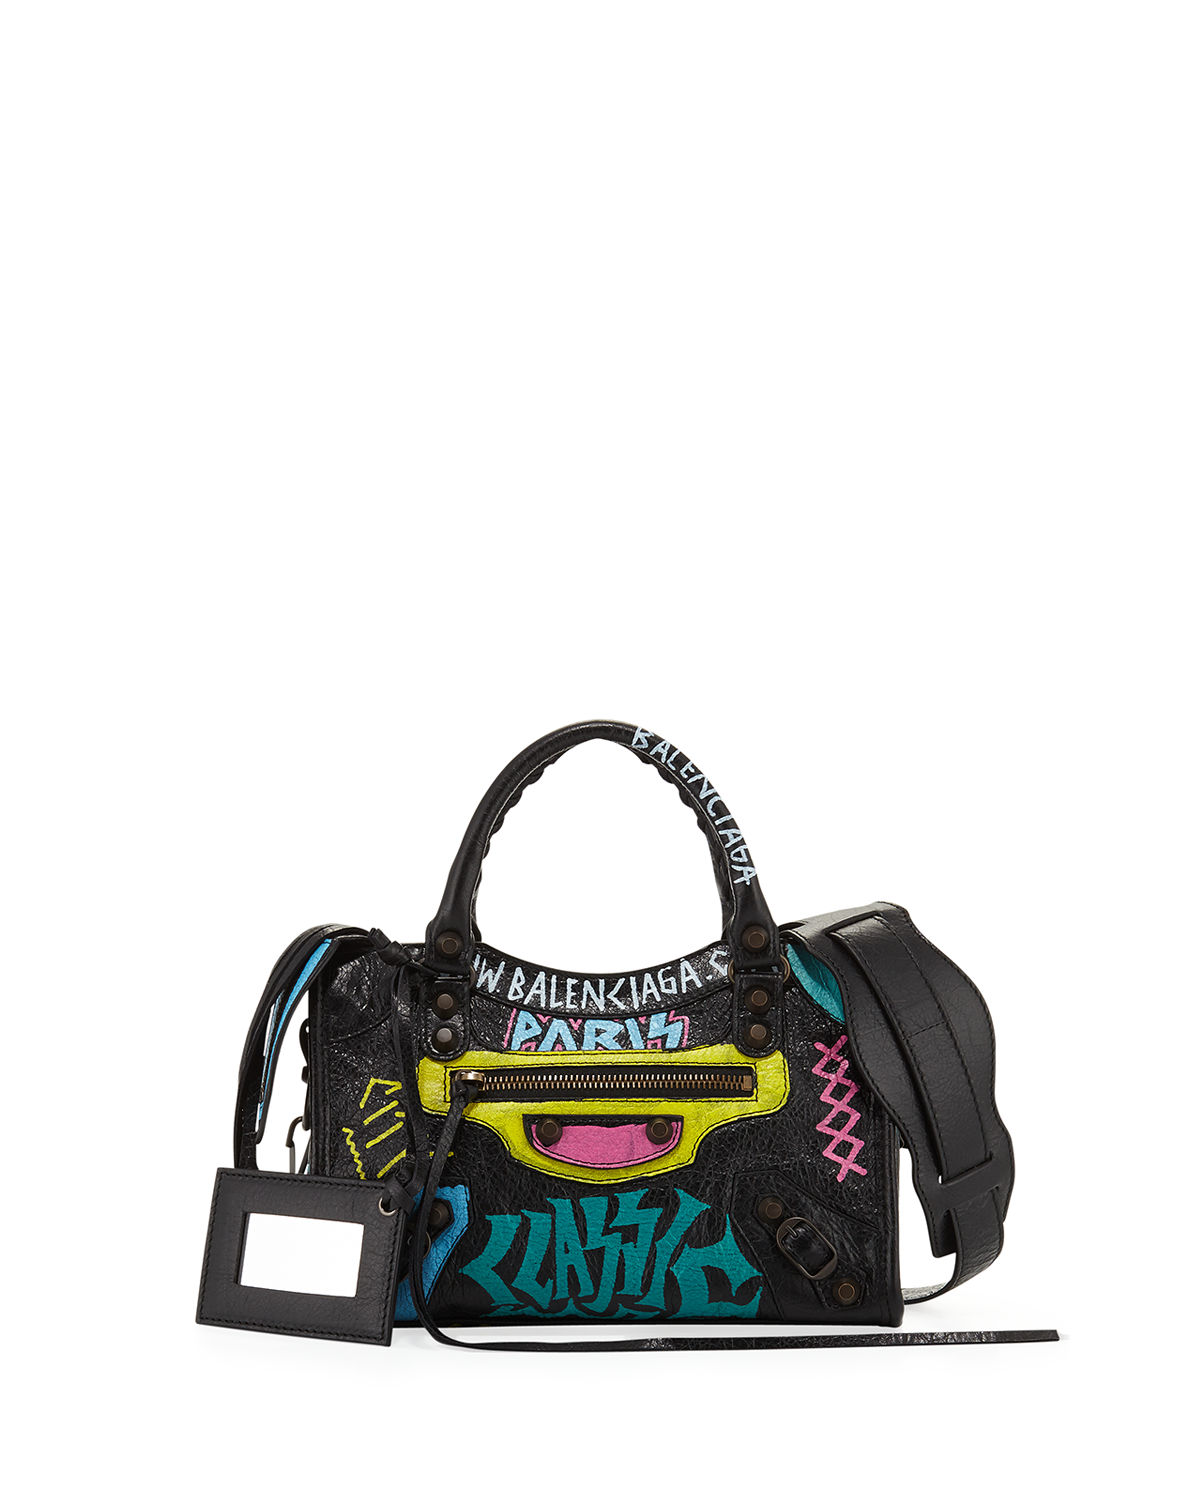 b044445f90 Balenciaga Mini City Graffiti-Print Satchel Bag | Neiman Marcus